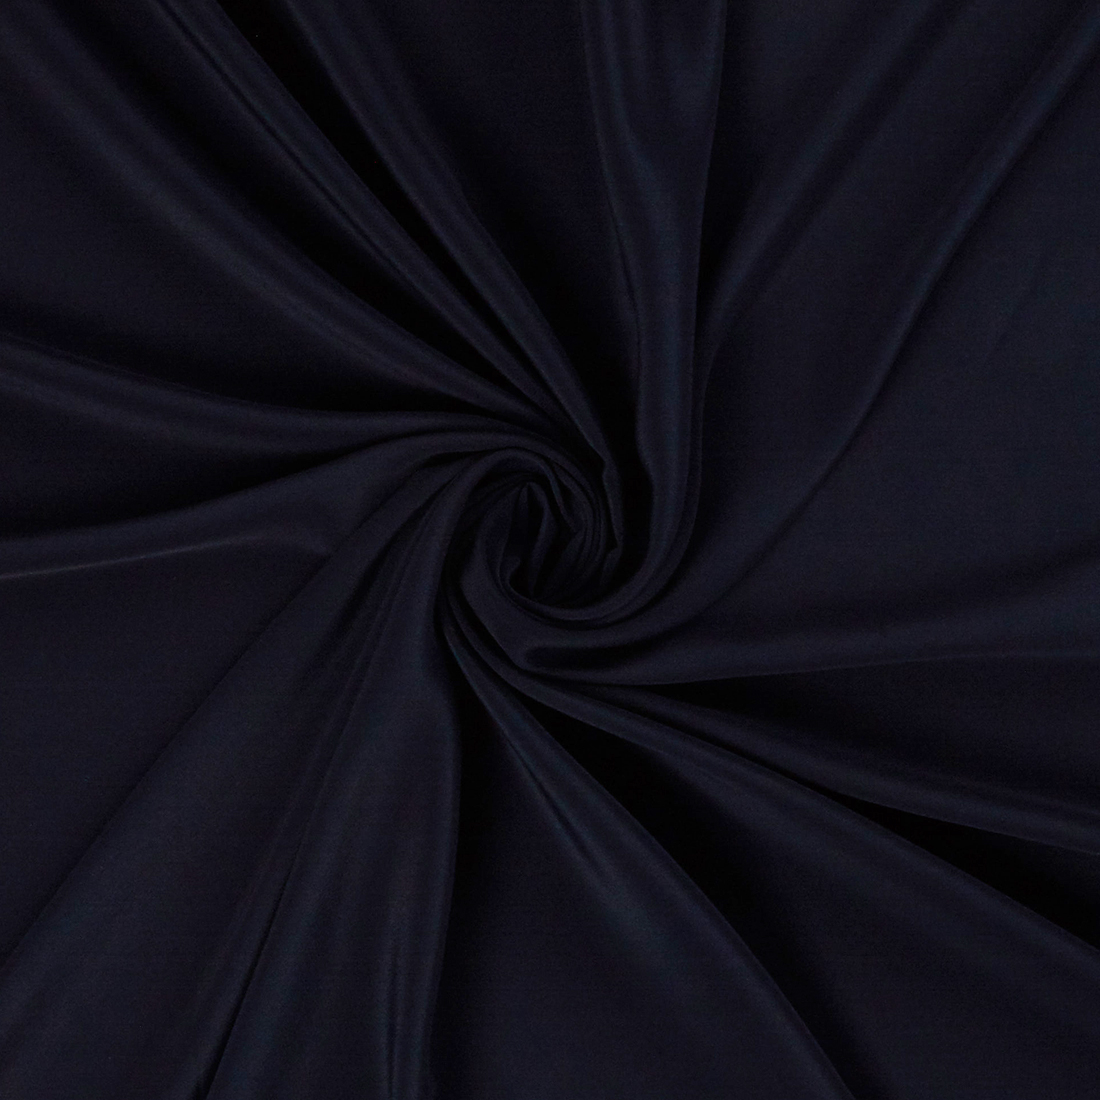 Silk Acetate Navy Dress Fabric